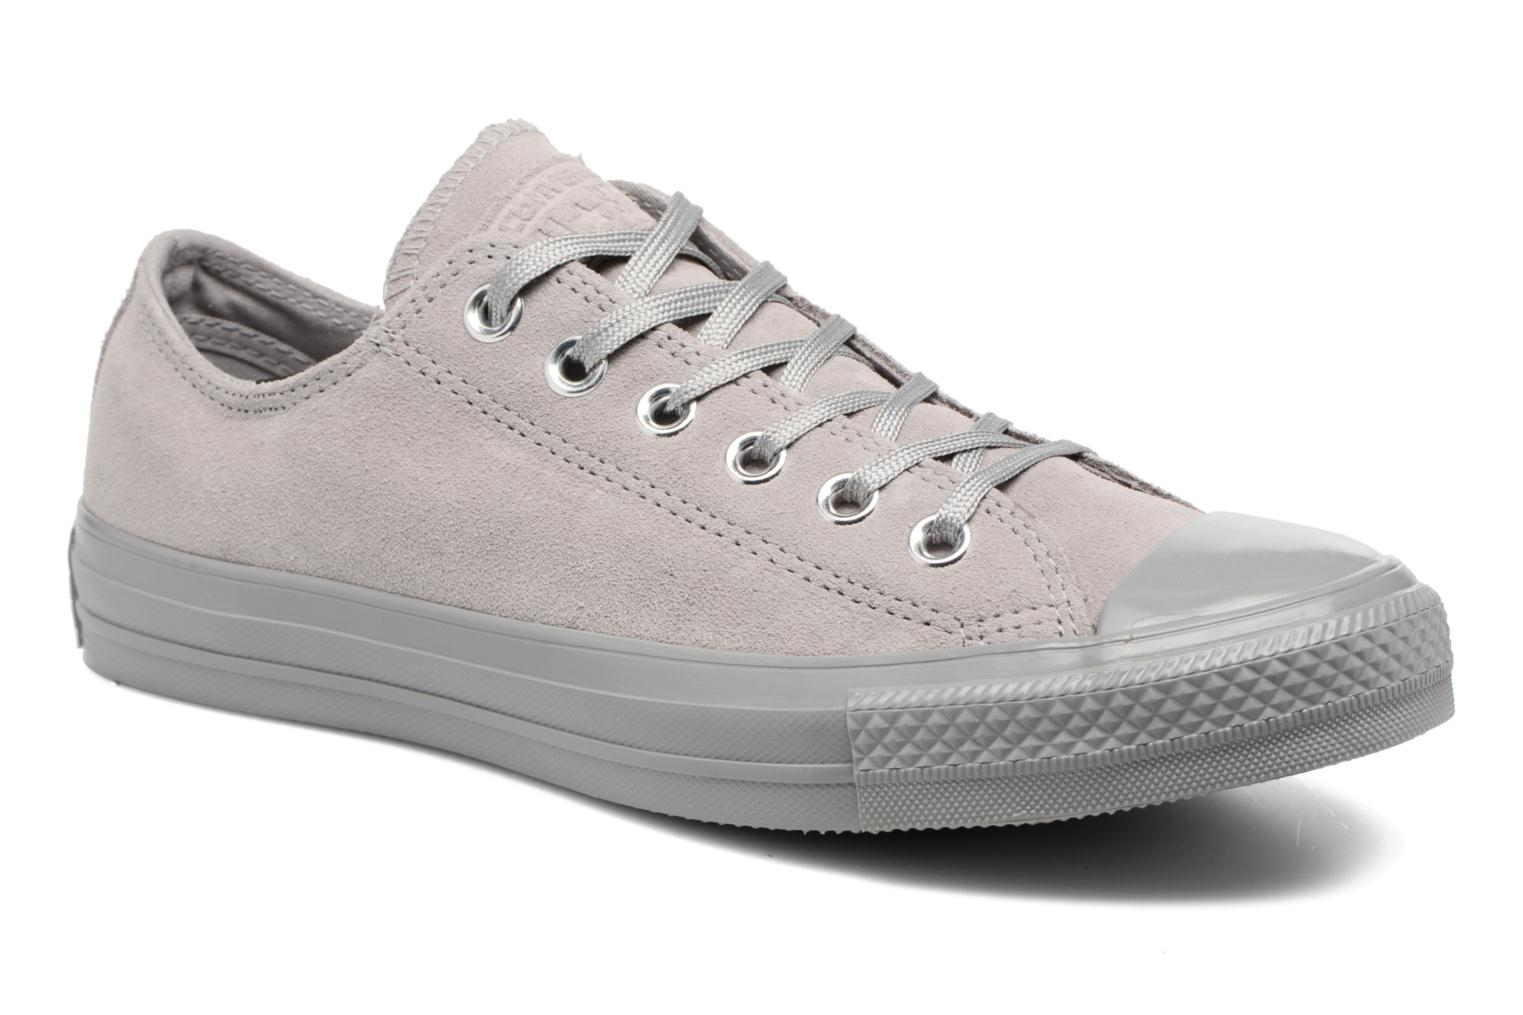 converse-chucks all star ox-damen-grau-558010c-graue-sneakers-damen